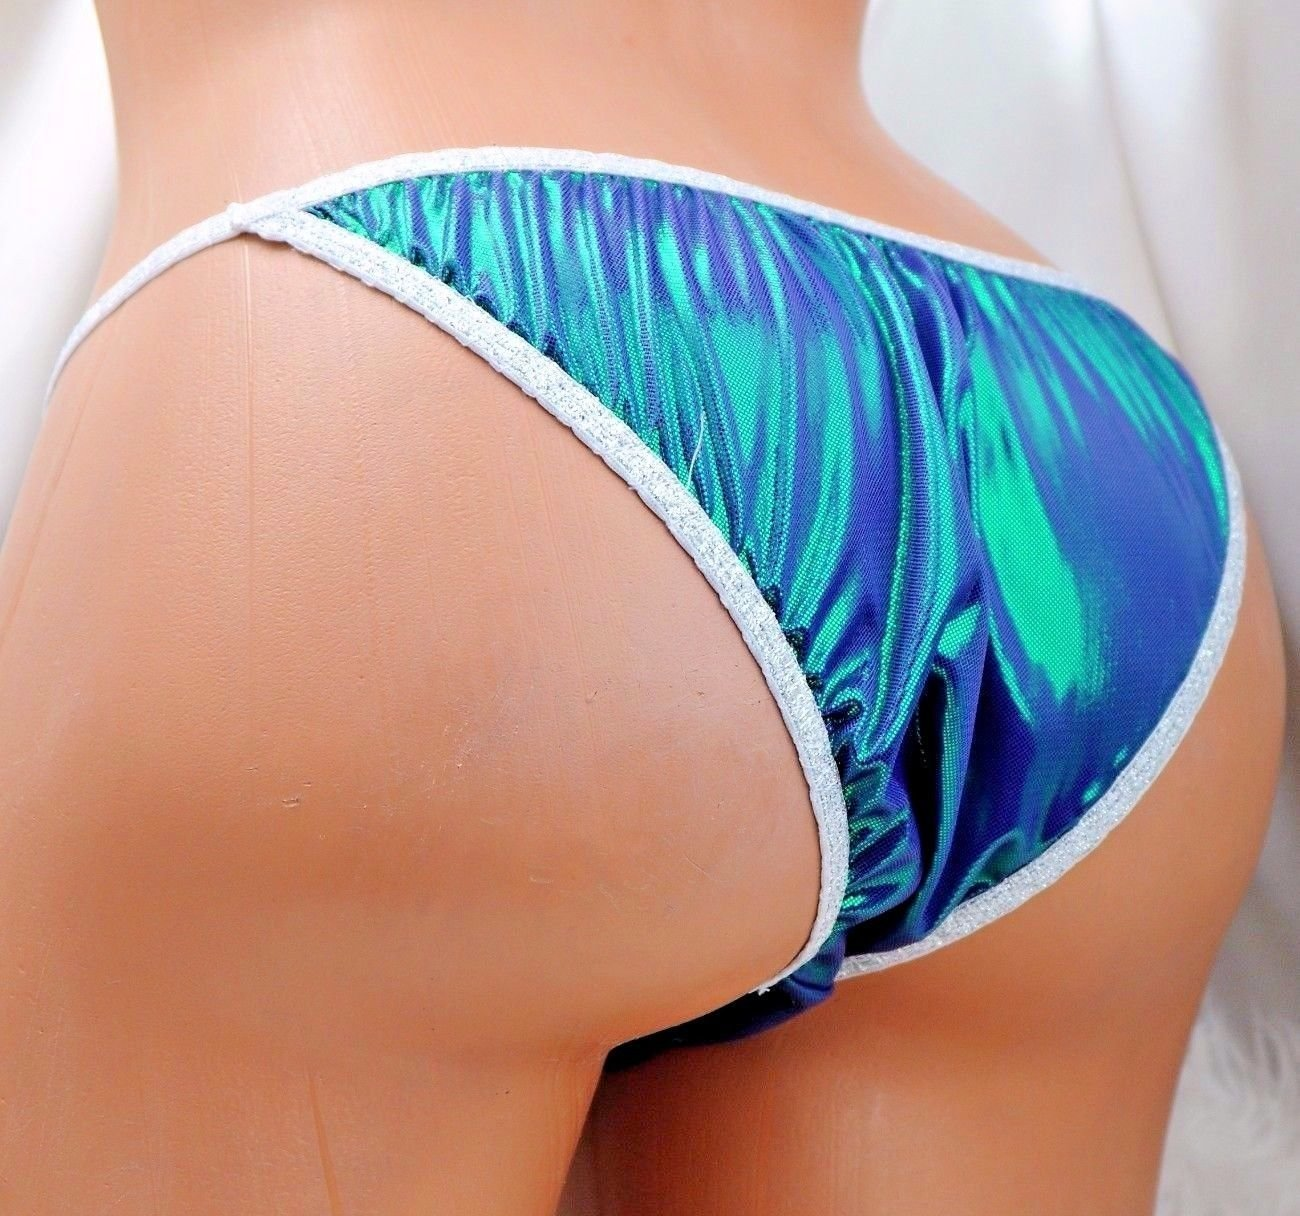 NEW COLORS!  S - XXL metallic shiny FOIL MANties Brazilian Cheeky cut string bikini sissy mens Sissy underwear panties